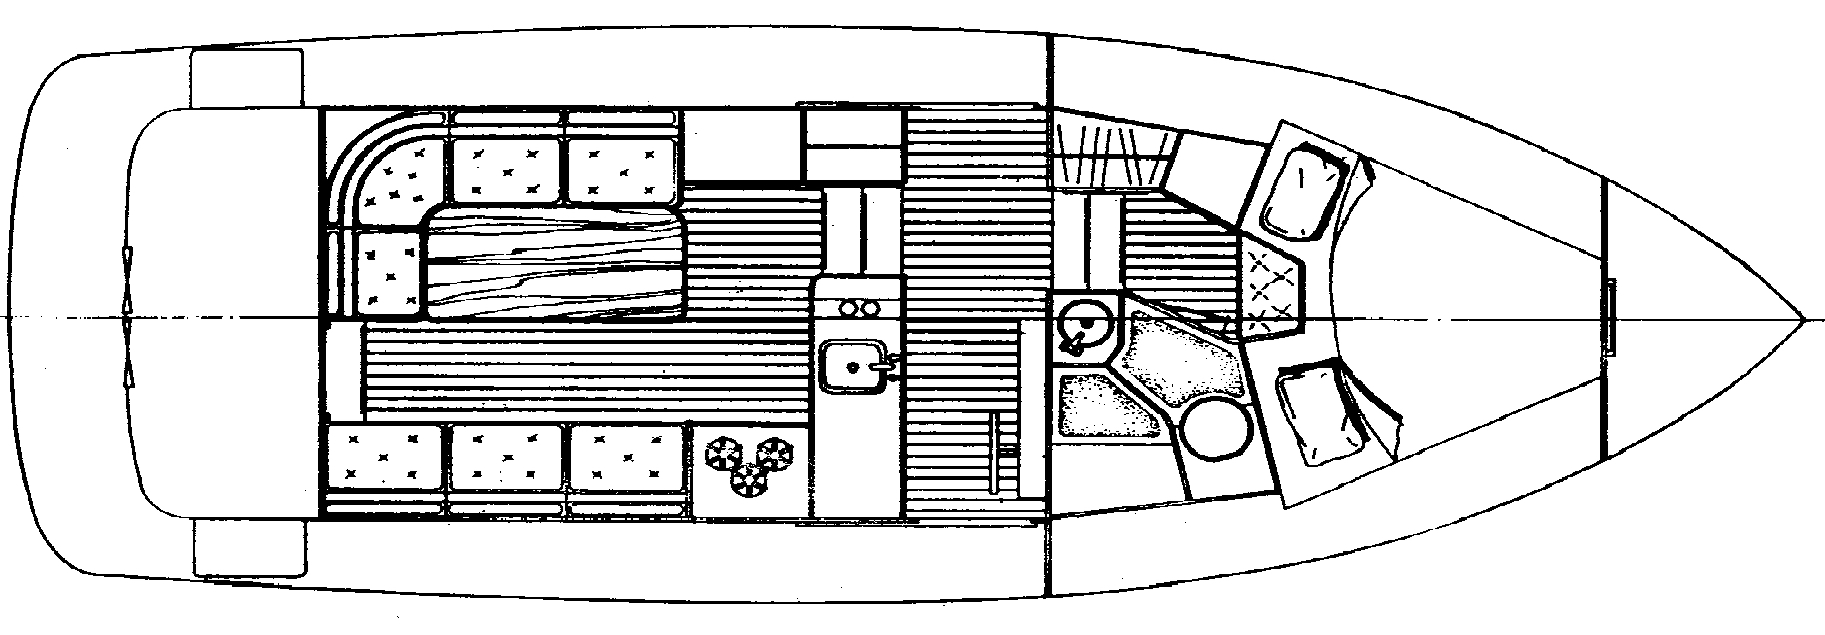 32 Pilothouse Floor Plan 1